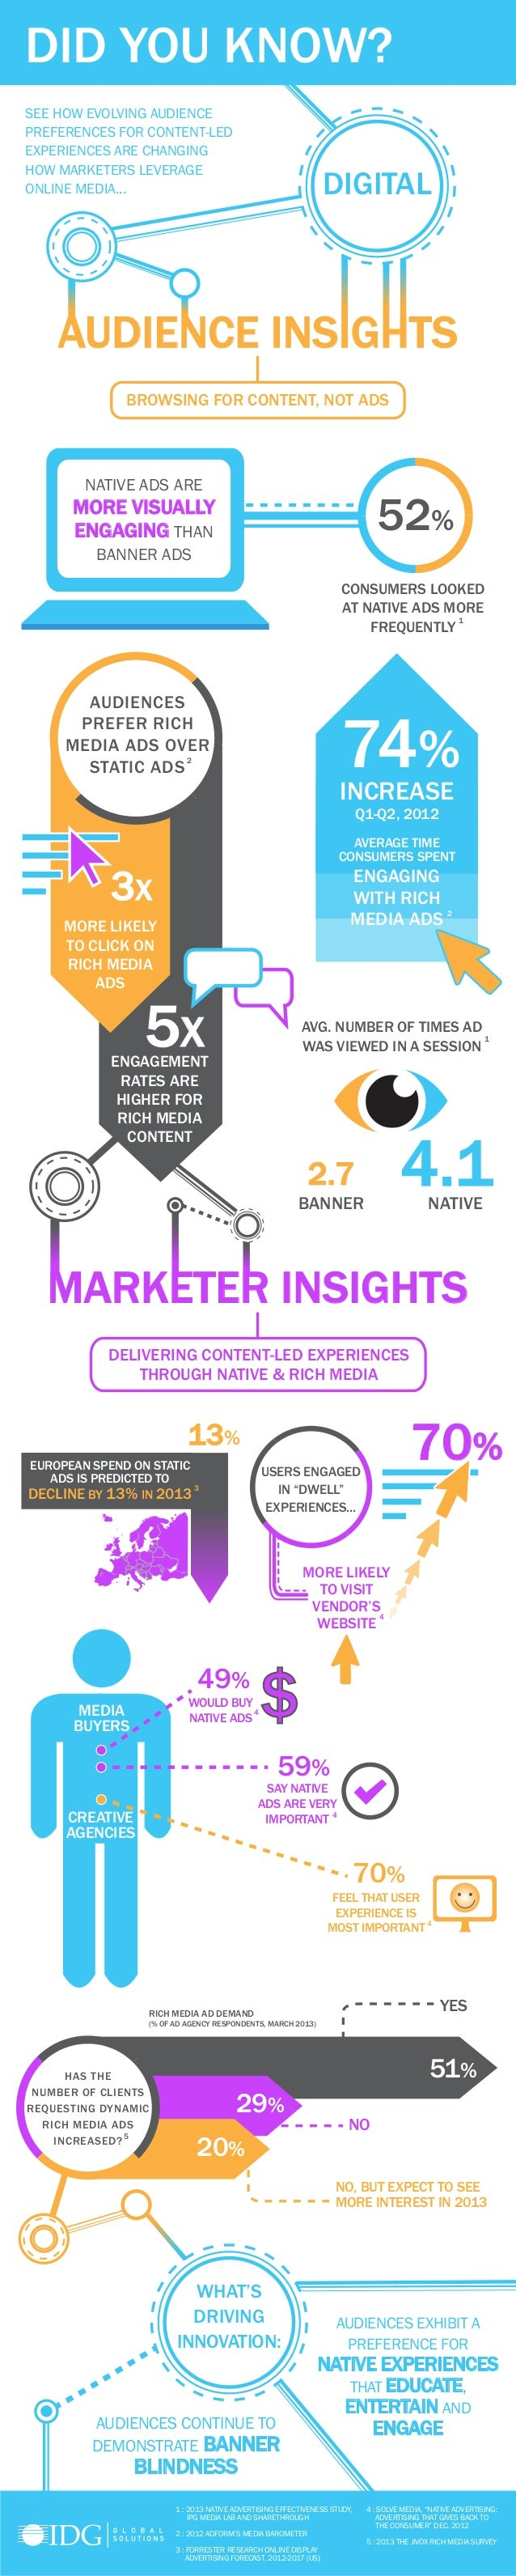 SEE HOW EVOLVING AUDIENCE PREFERENCES FOR CONTENT-LED EXPERIENCES ARE CHANGING HOW MARKETERS LEVERAGE ONLINE MEDIA... DIGI...